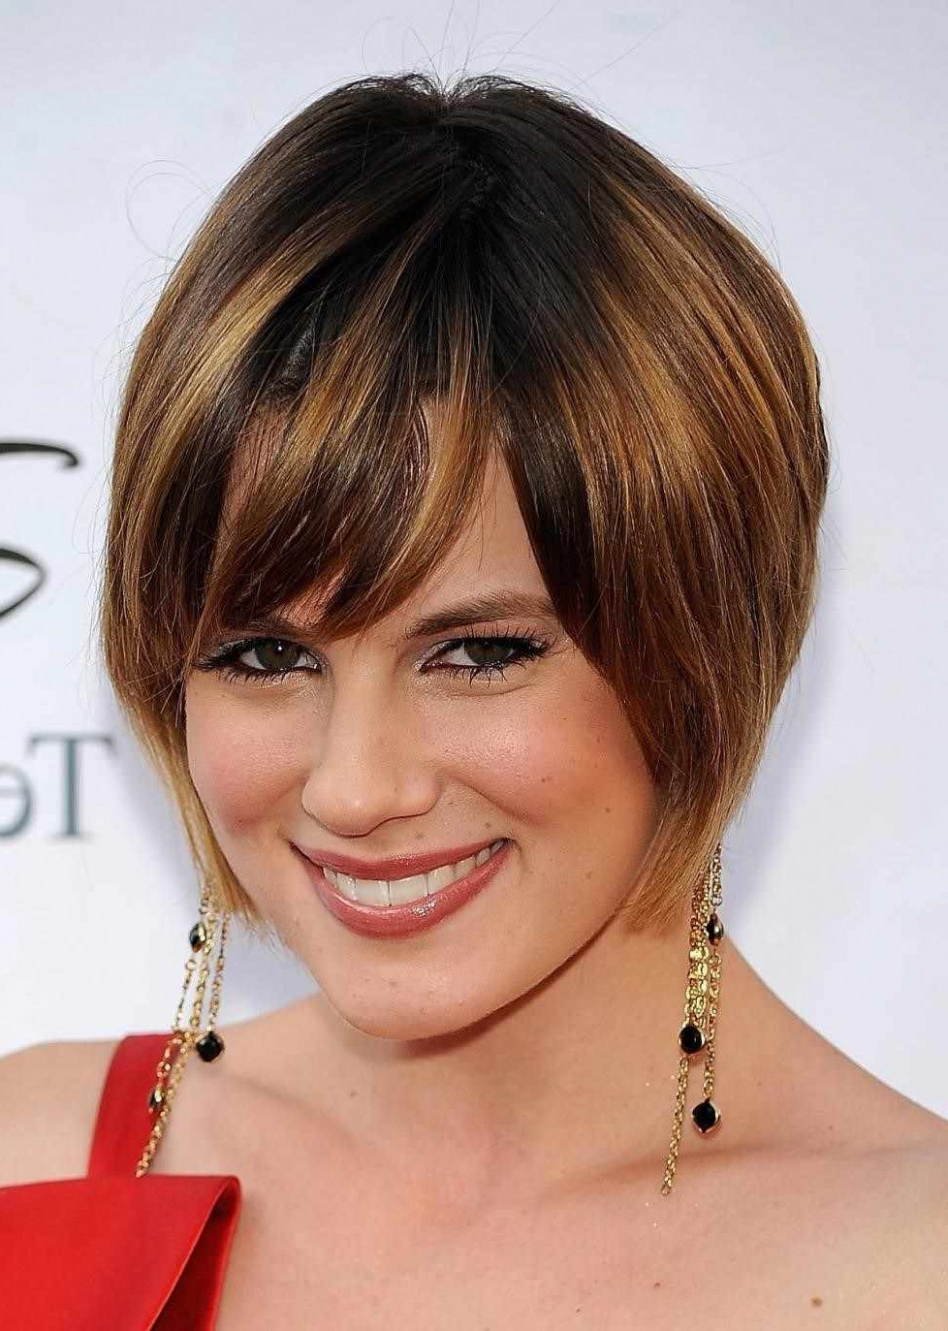 5 Gorgeous Short Haircuts For Round Faces – Low Maintenance In Low Maintenance Short Haircuts (View 11 of 25)